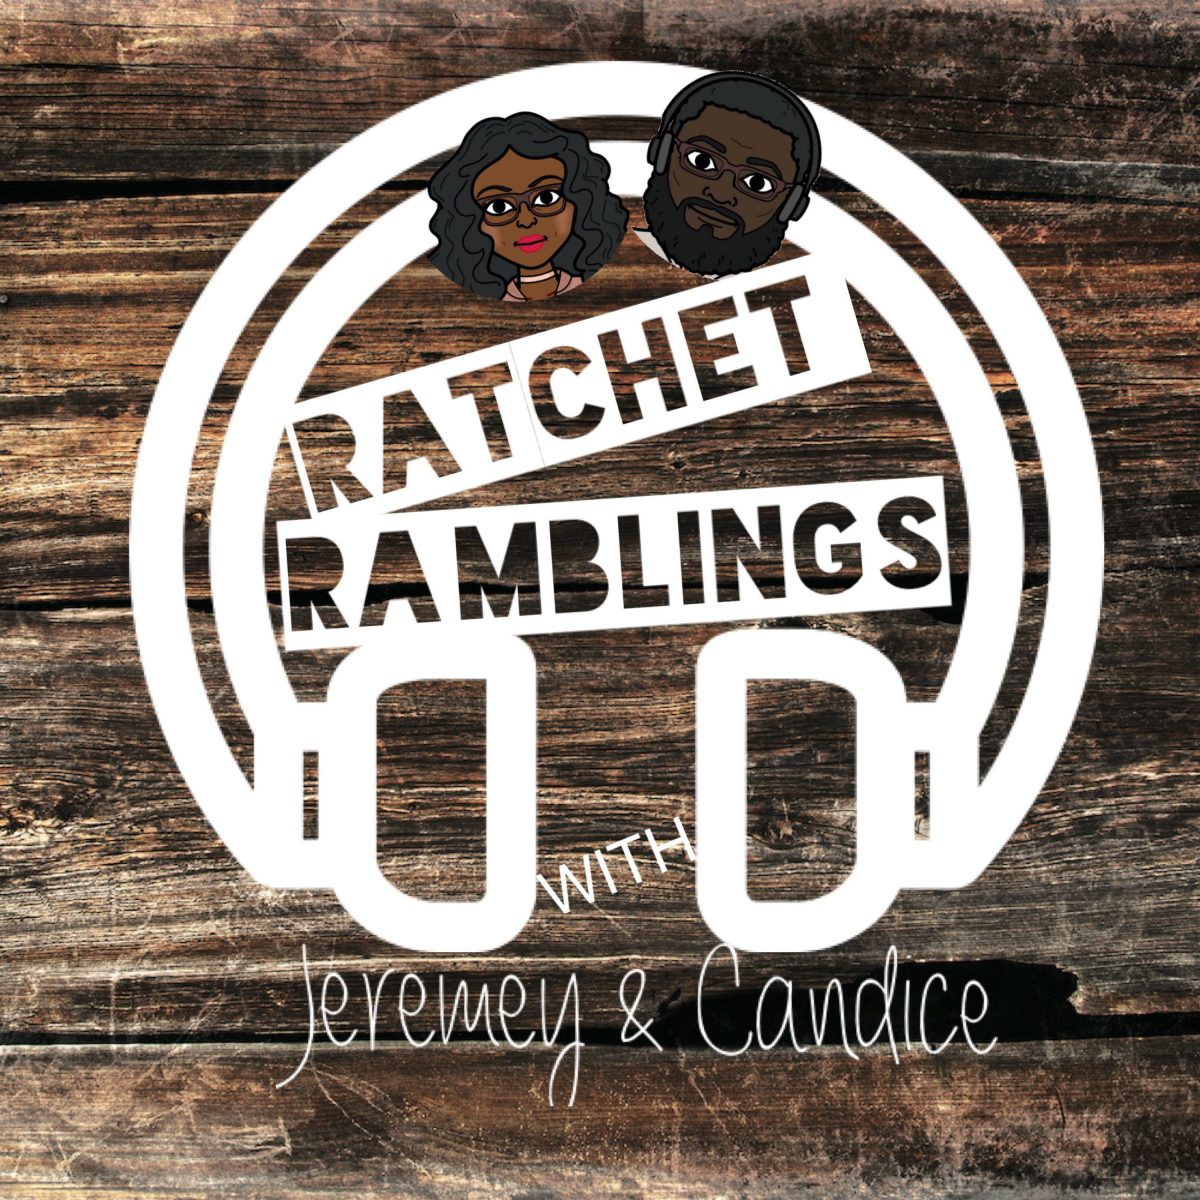 Ratchet Ramblings Episode 20: Mean to Queen